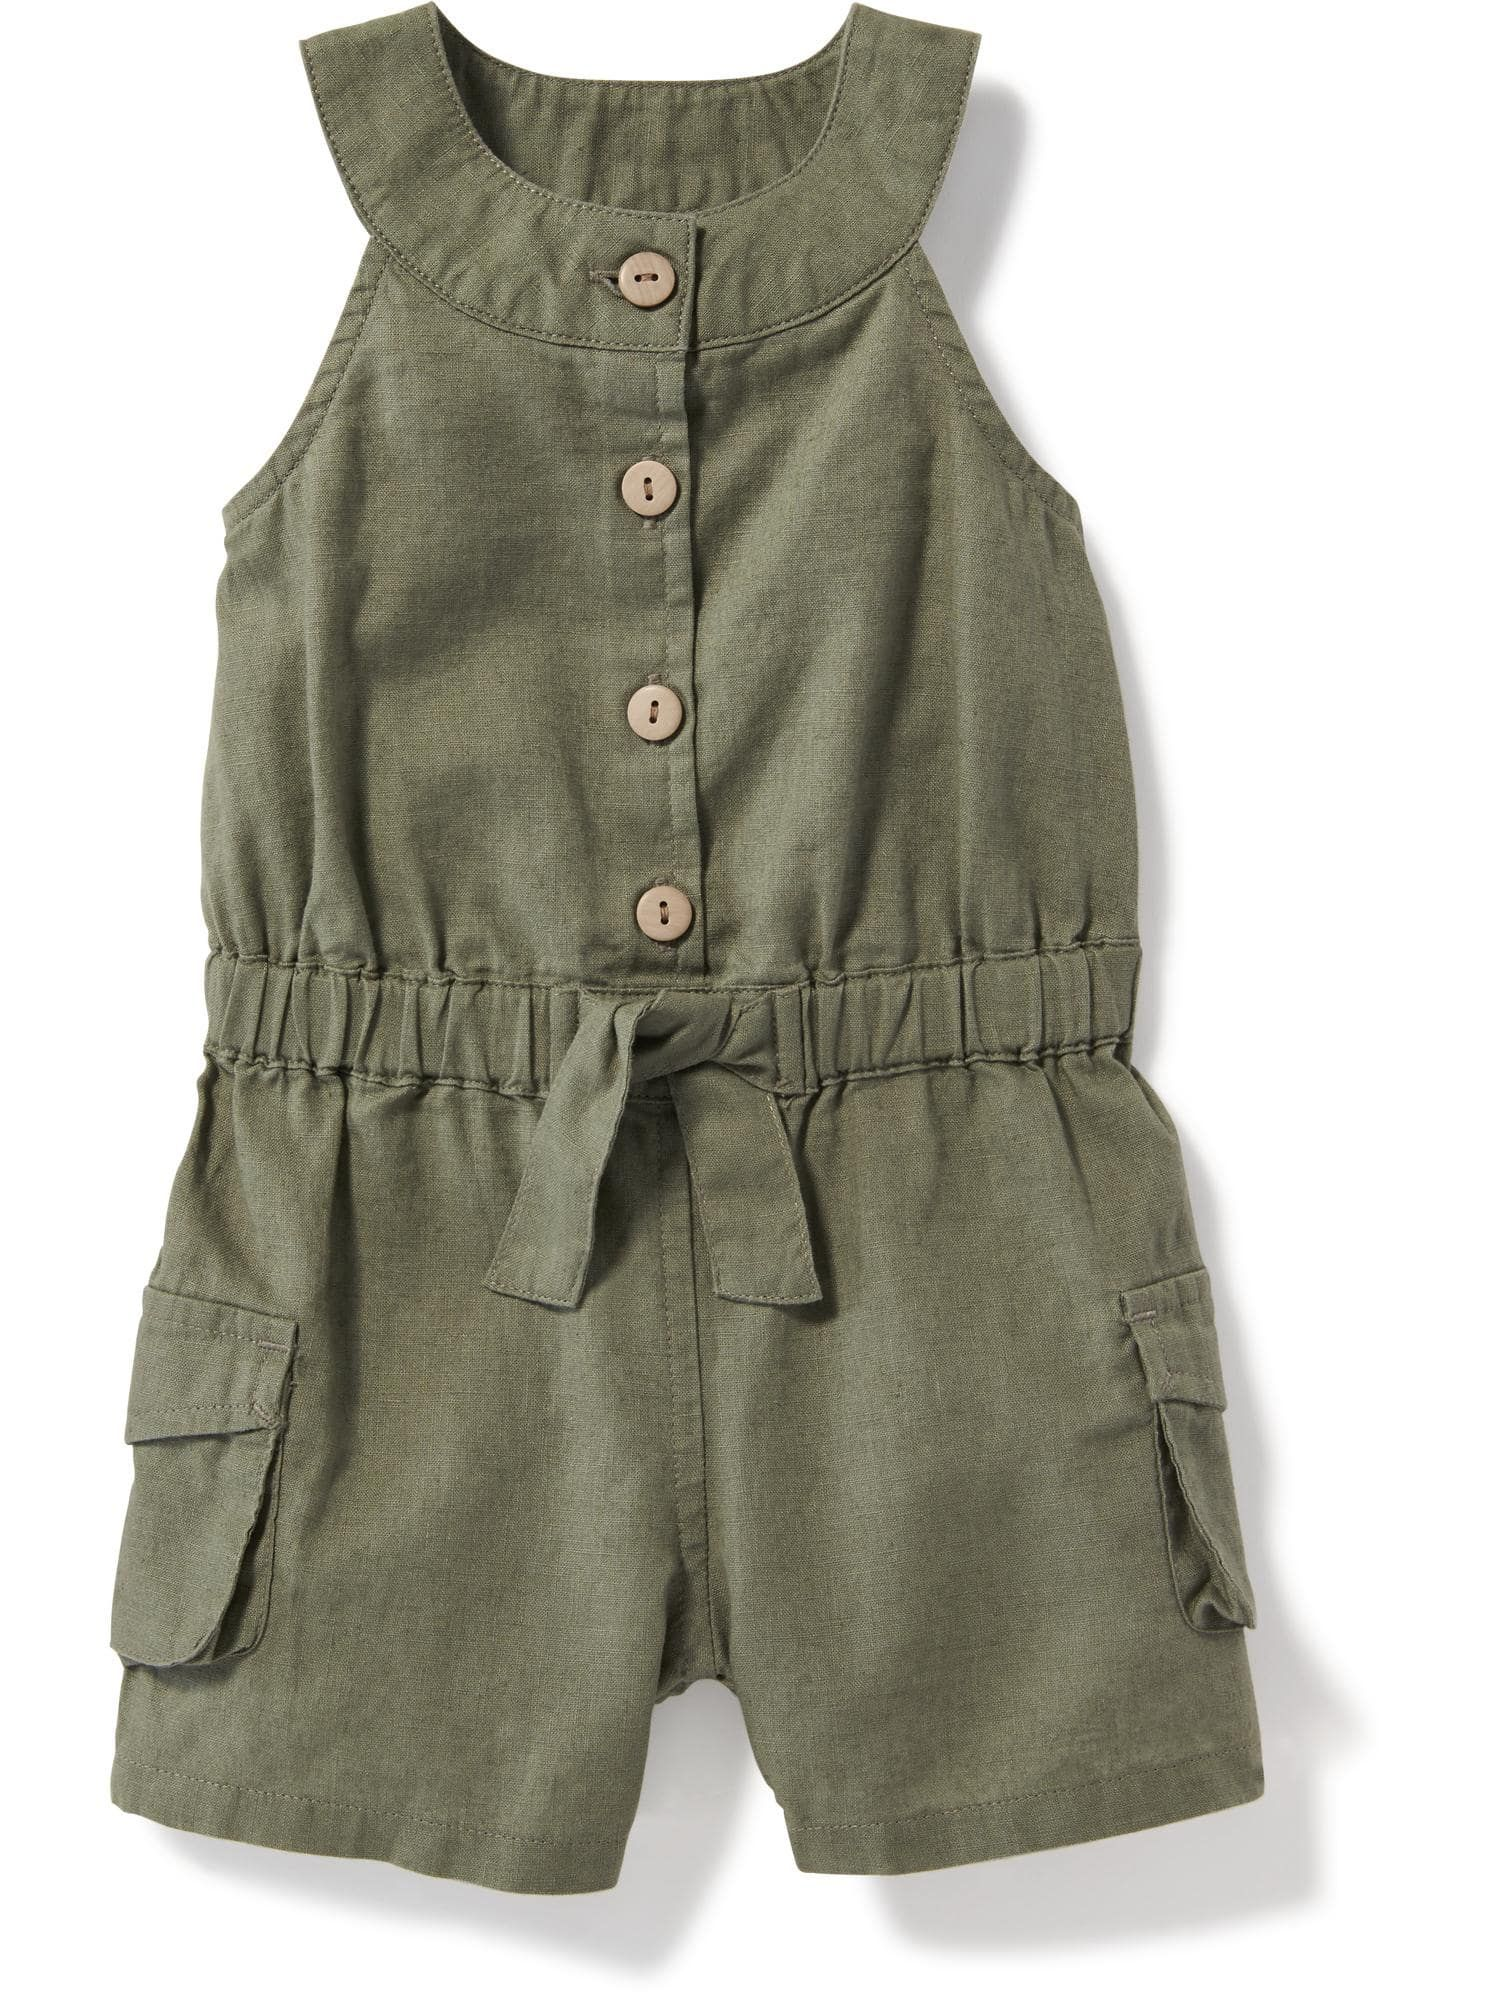 Sleeveless Utility Romper for Baby Old Navy